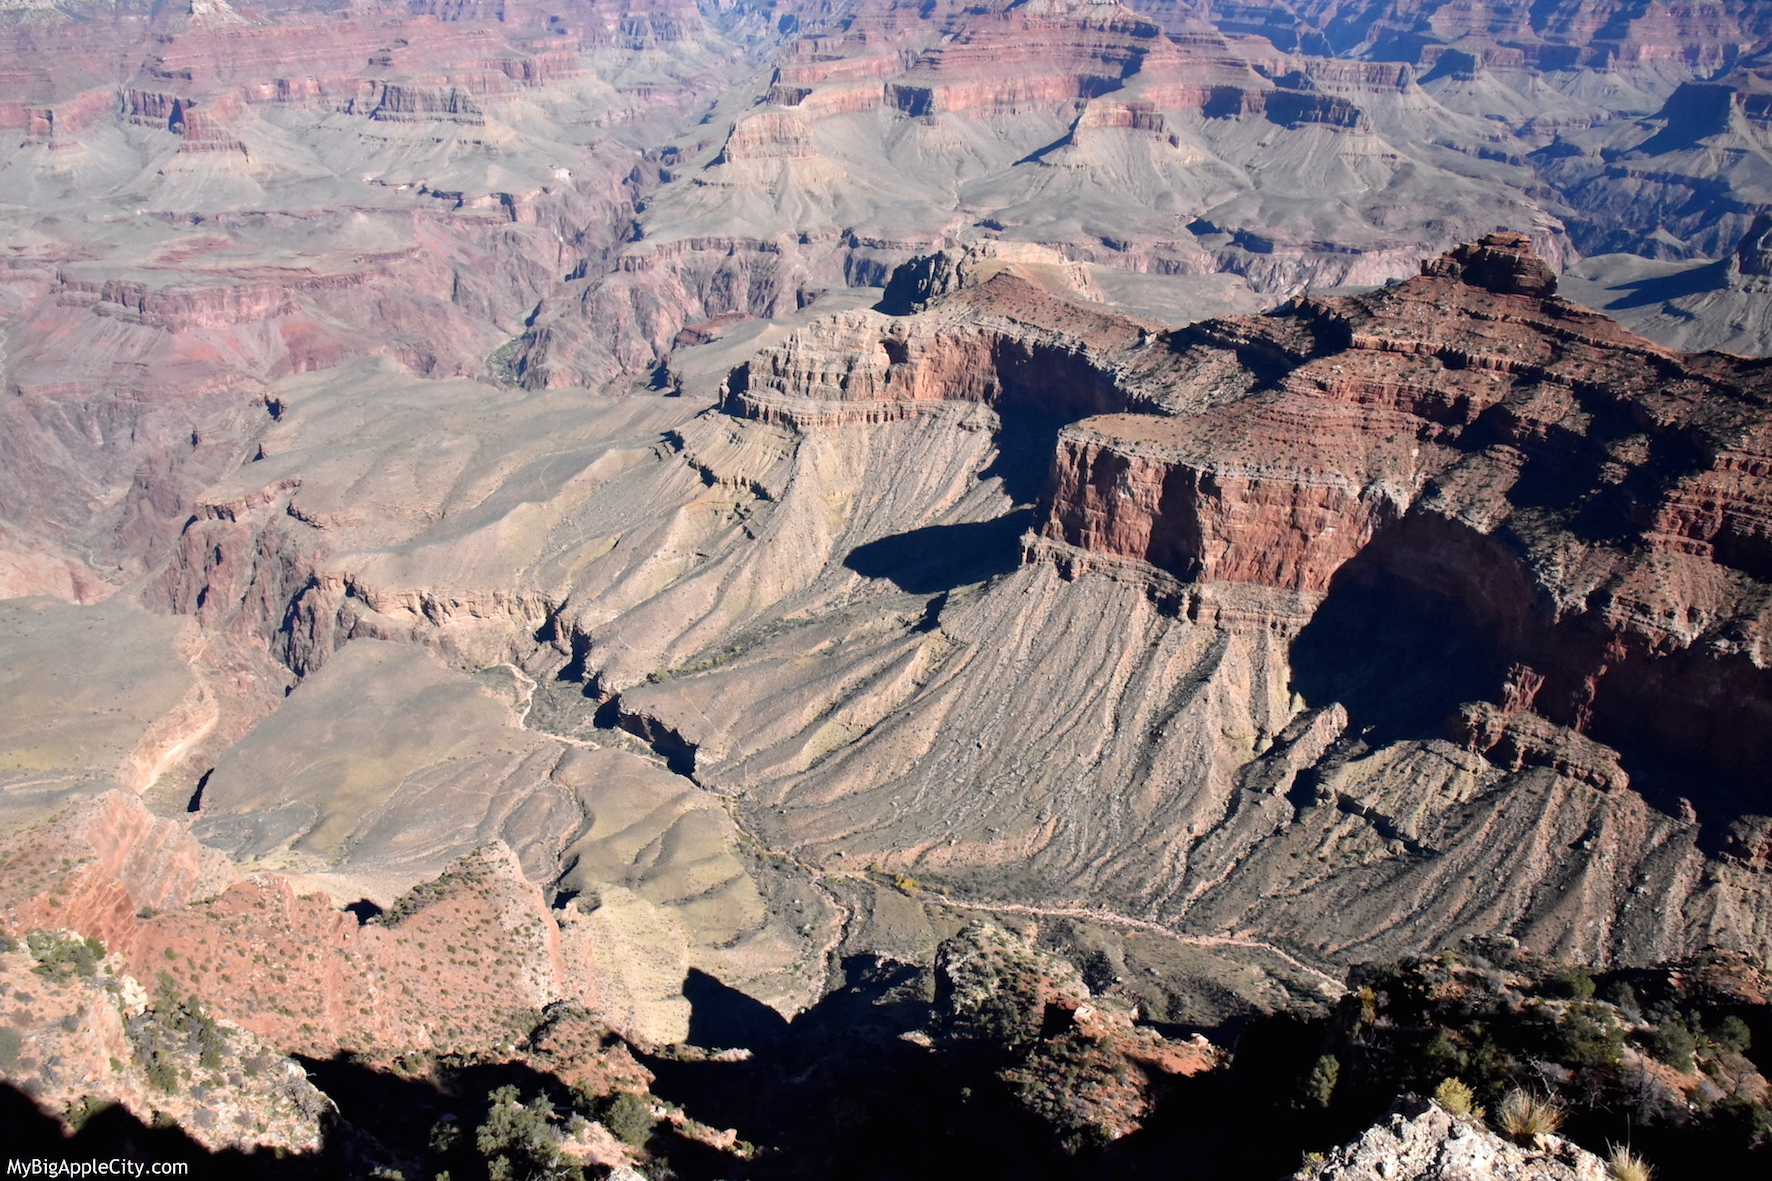 Visiter-Grand-Canyon-USA-voyage-blog-MyBigAppleCity